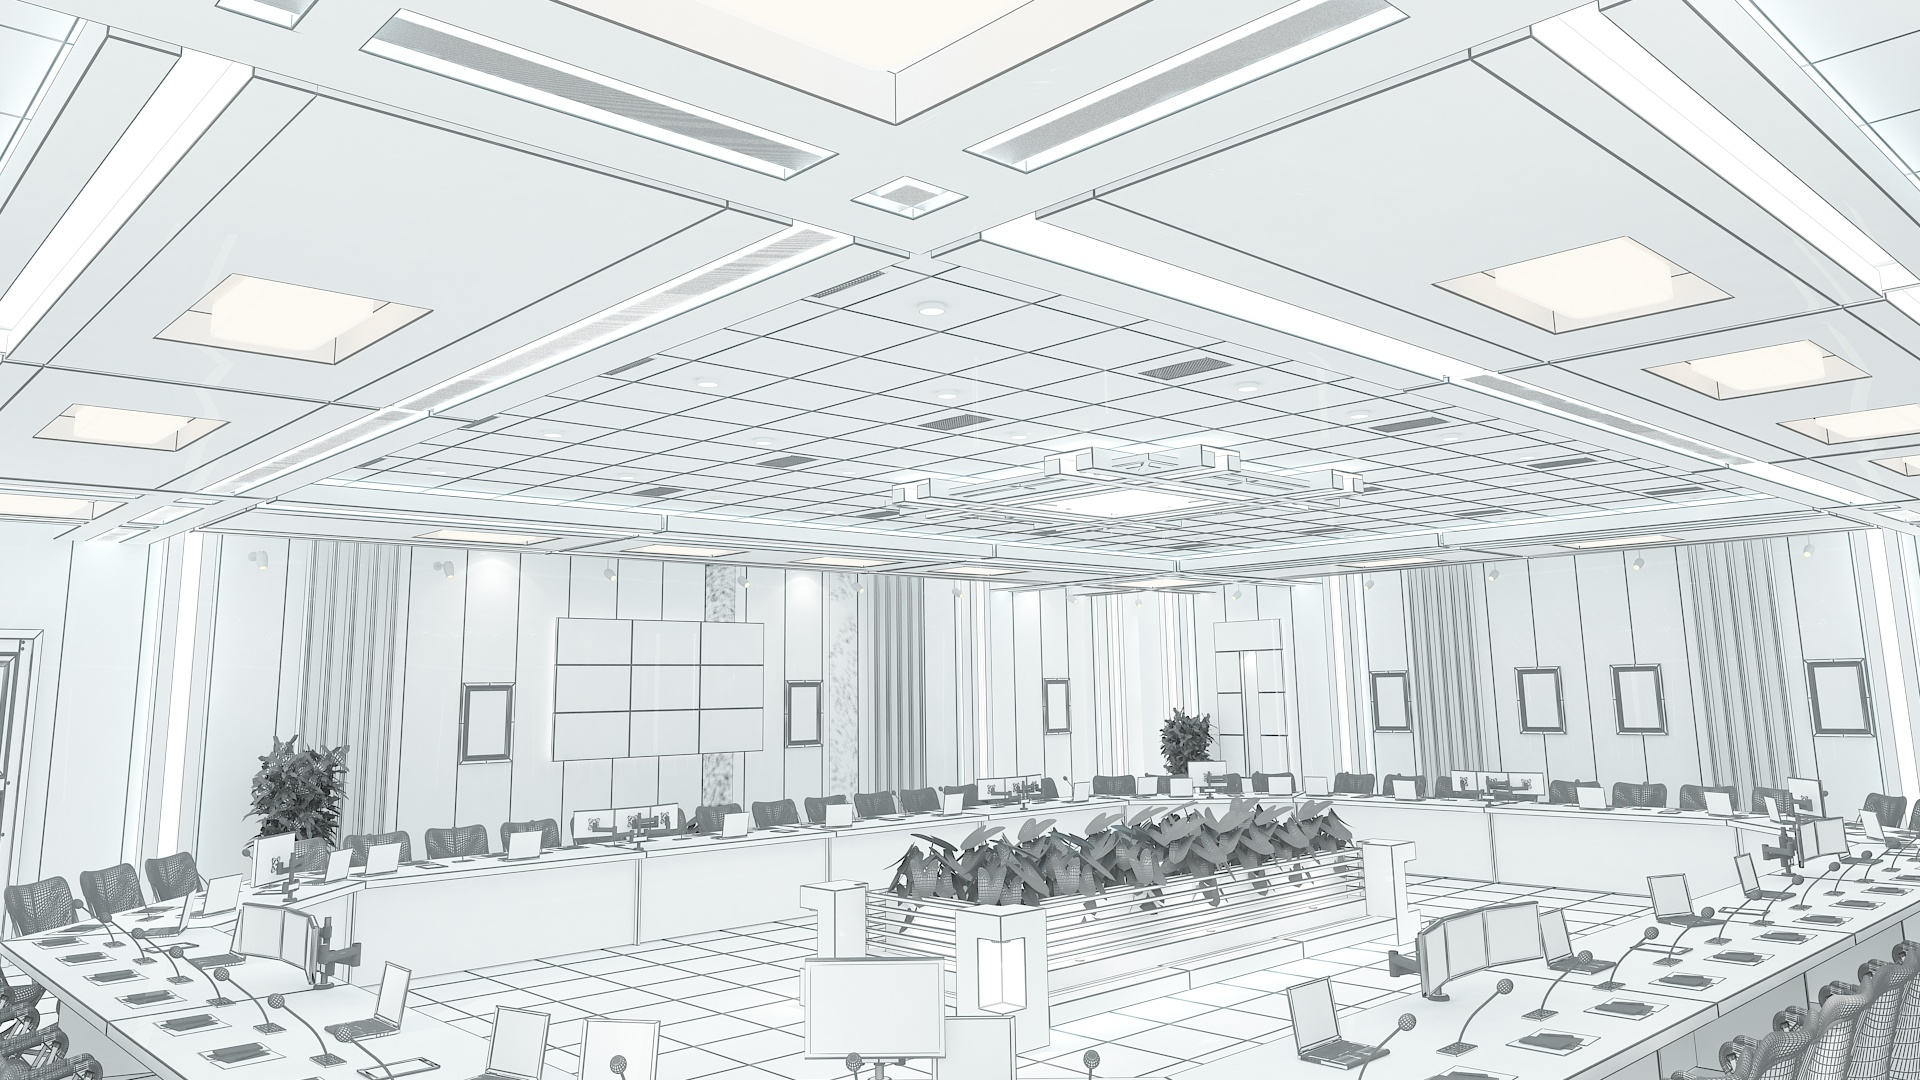 meeting room 1 3d model 3ds max dxf dwg 288119